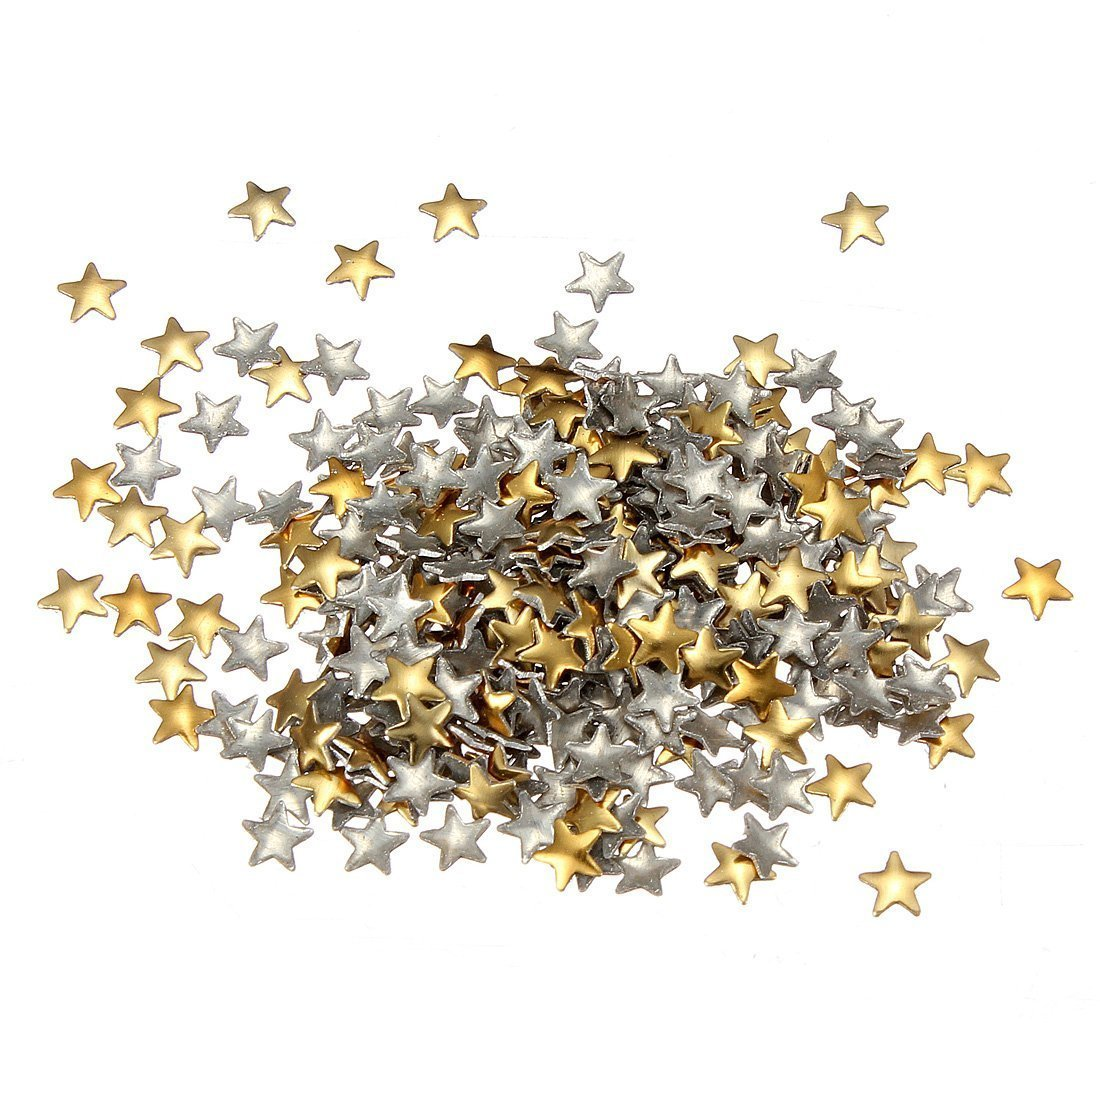 SODIAL(R) Nail Art 250 Pieces Gold & Silver 5mm Star Metal Studs for Nails